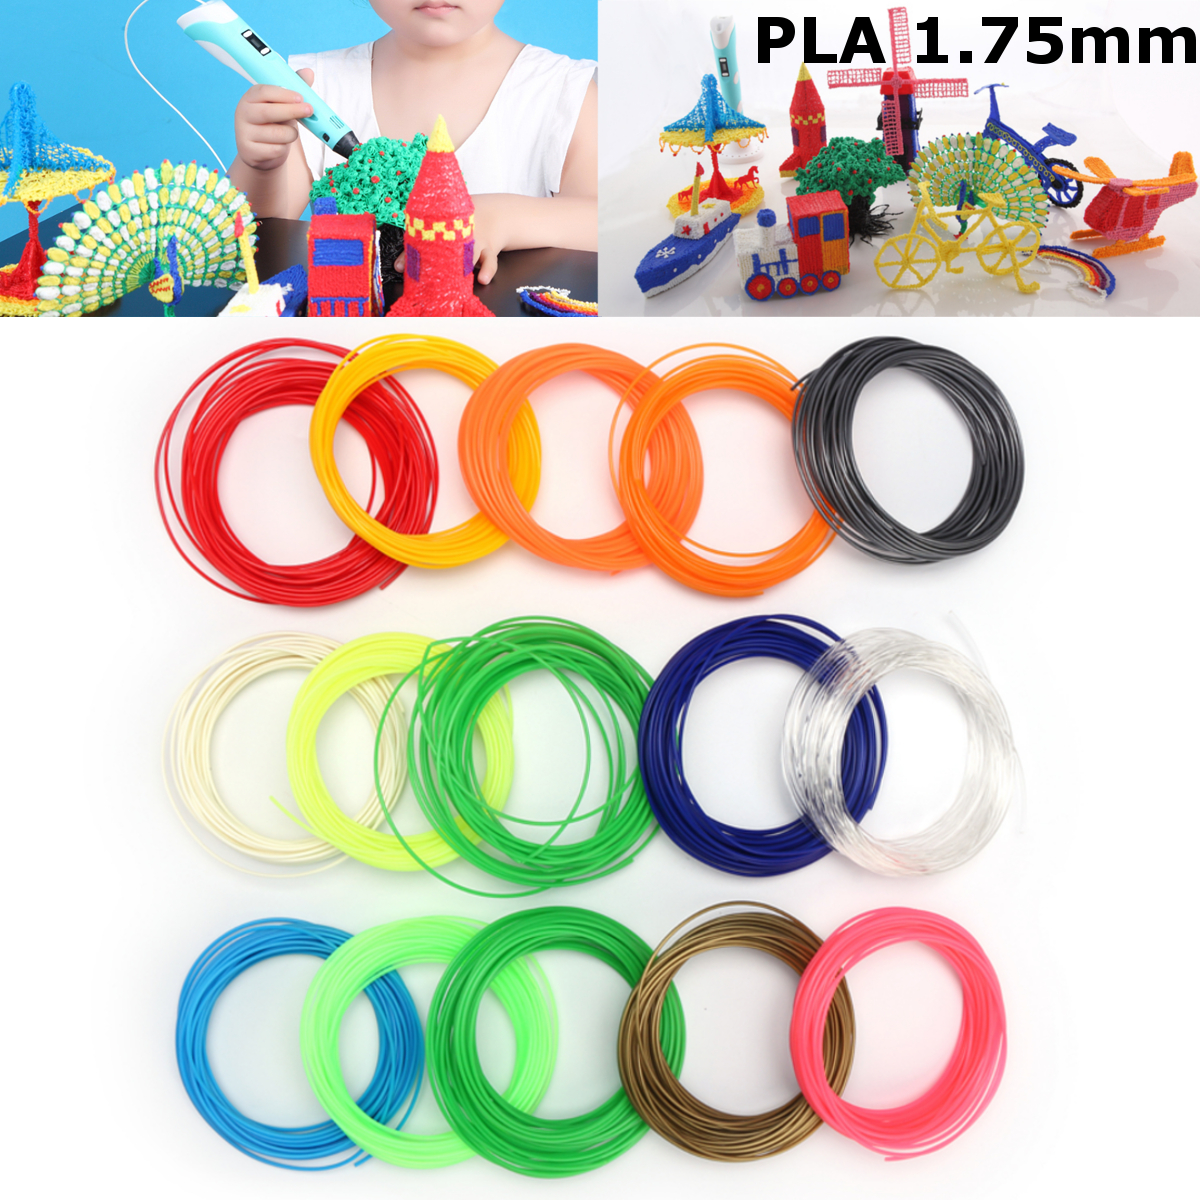 15 Colors x 10M/Roll 1.75mm PLA Filament For 3D Printer Printing Pen RepRap Marker